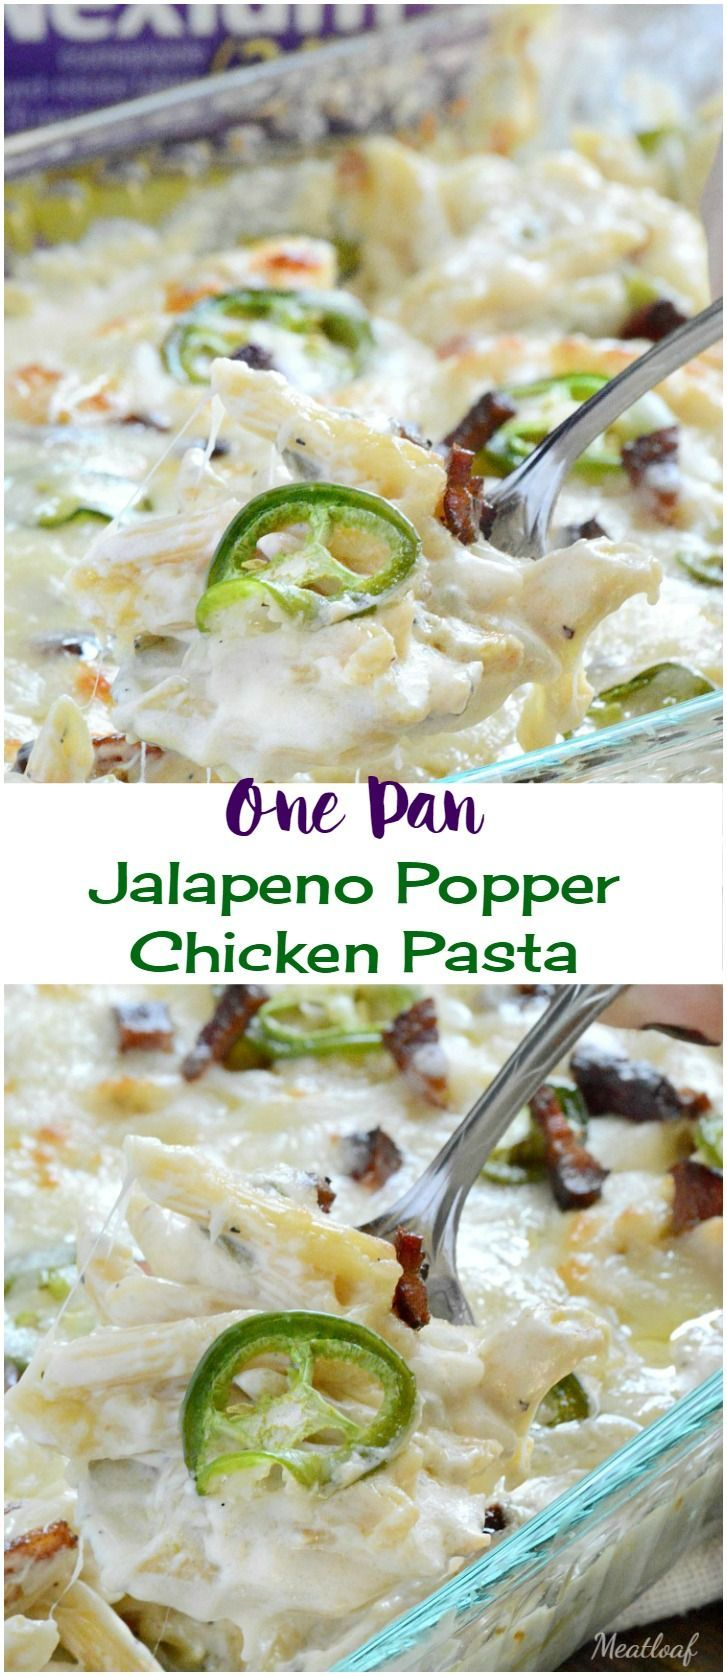 One Pan Jalapeno Popper Chicken Pasta. This spicy, creamy, easy game day dinner is loaded with cheese, bacon and jalapeno peppers. AD #Tailgreatness @Walmart